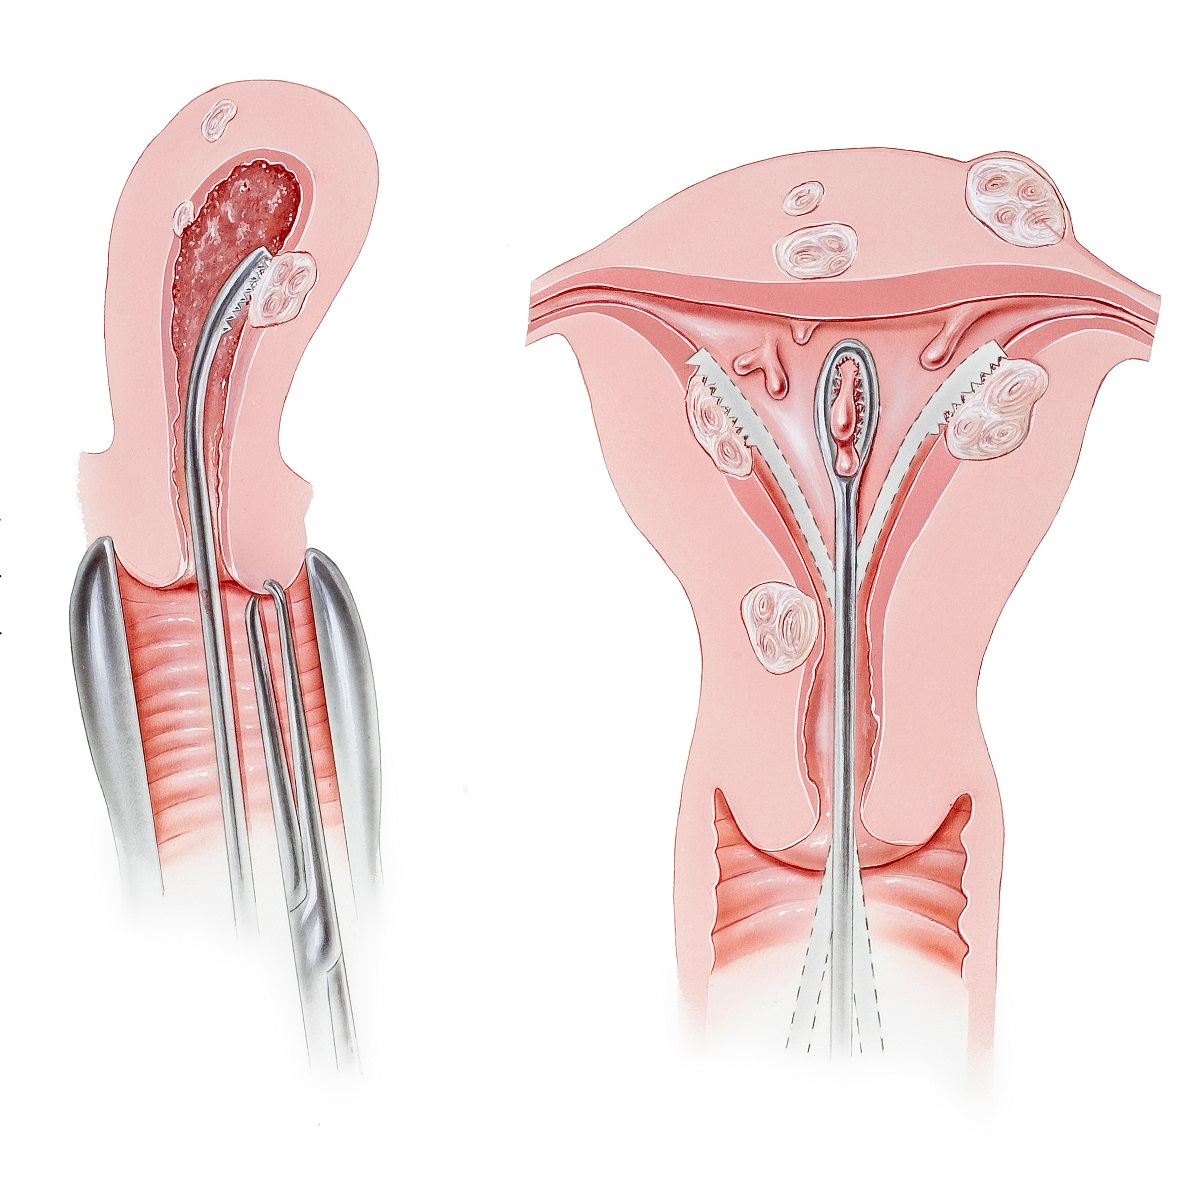 Uterus - Dilation and Curettage Procedure